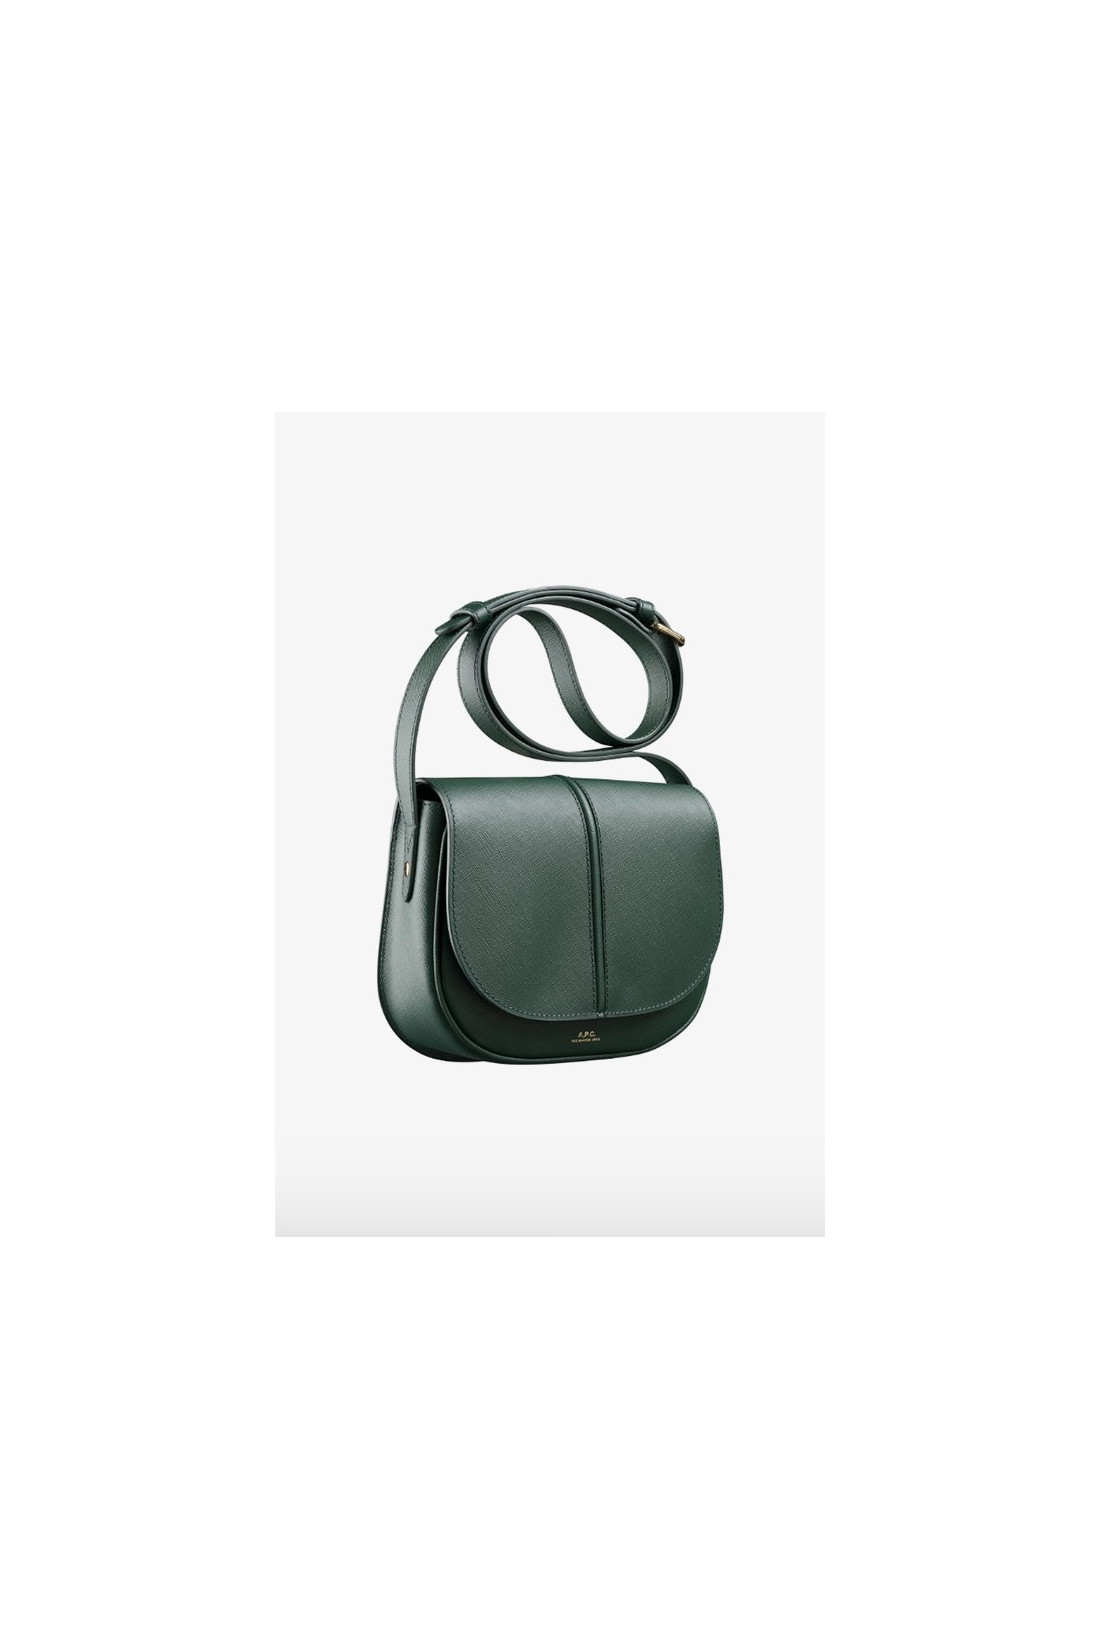 A.P.C. FOR WOMAN / Sac betty Vert sapin